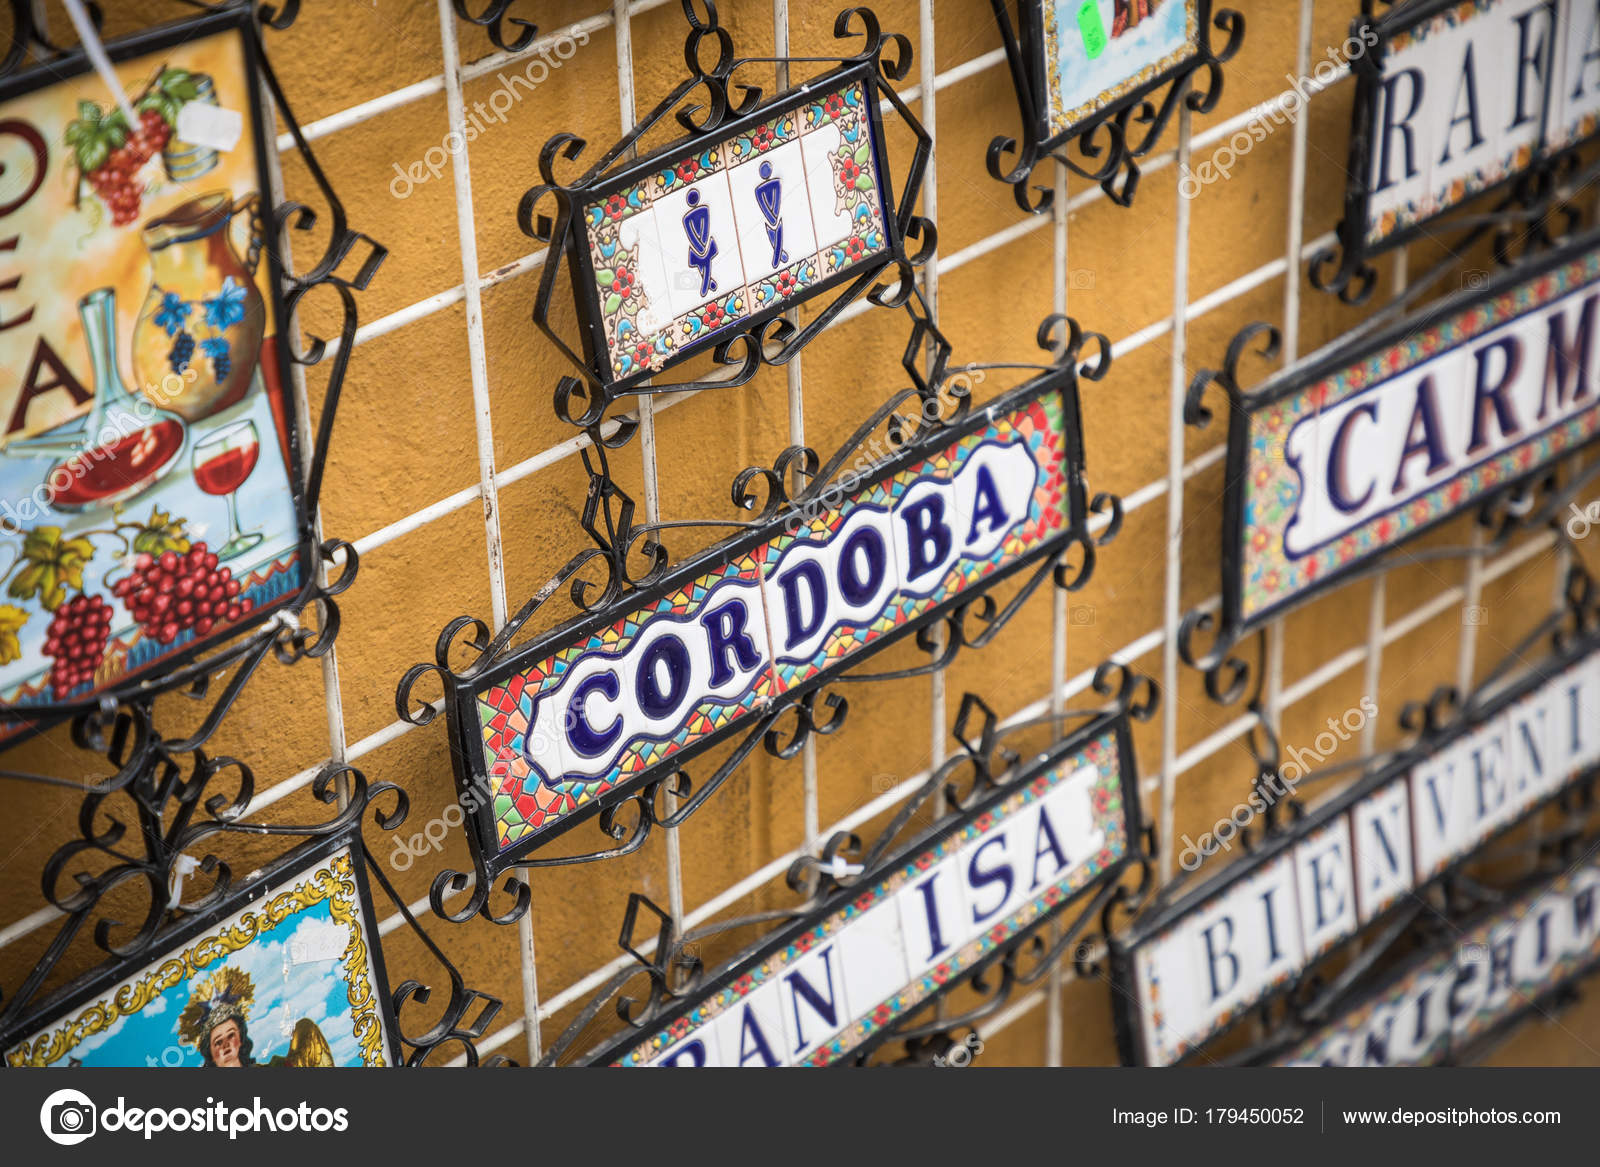 Ceramics signs at local souvenir shop in Cordoba, Andalusia, Spa